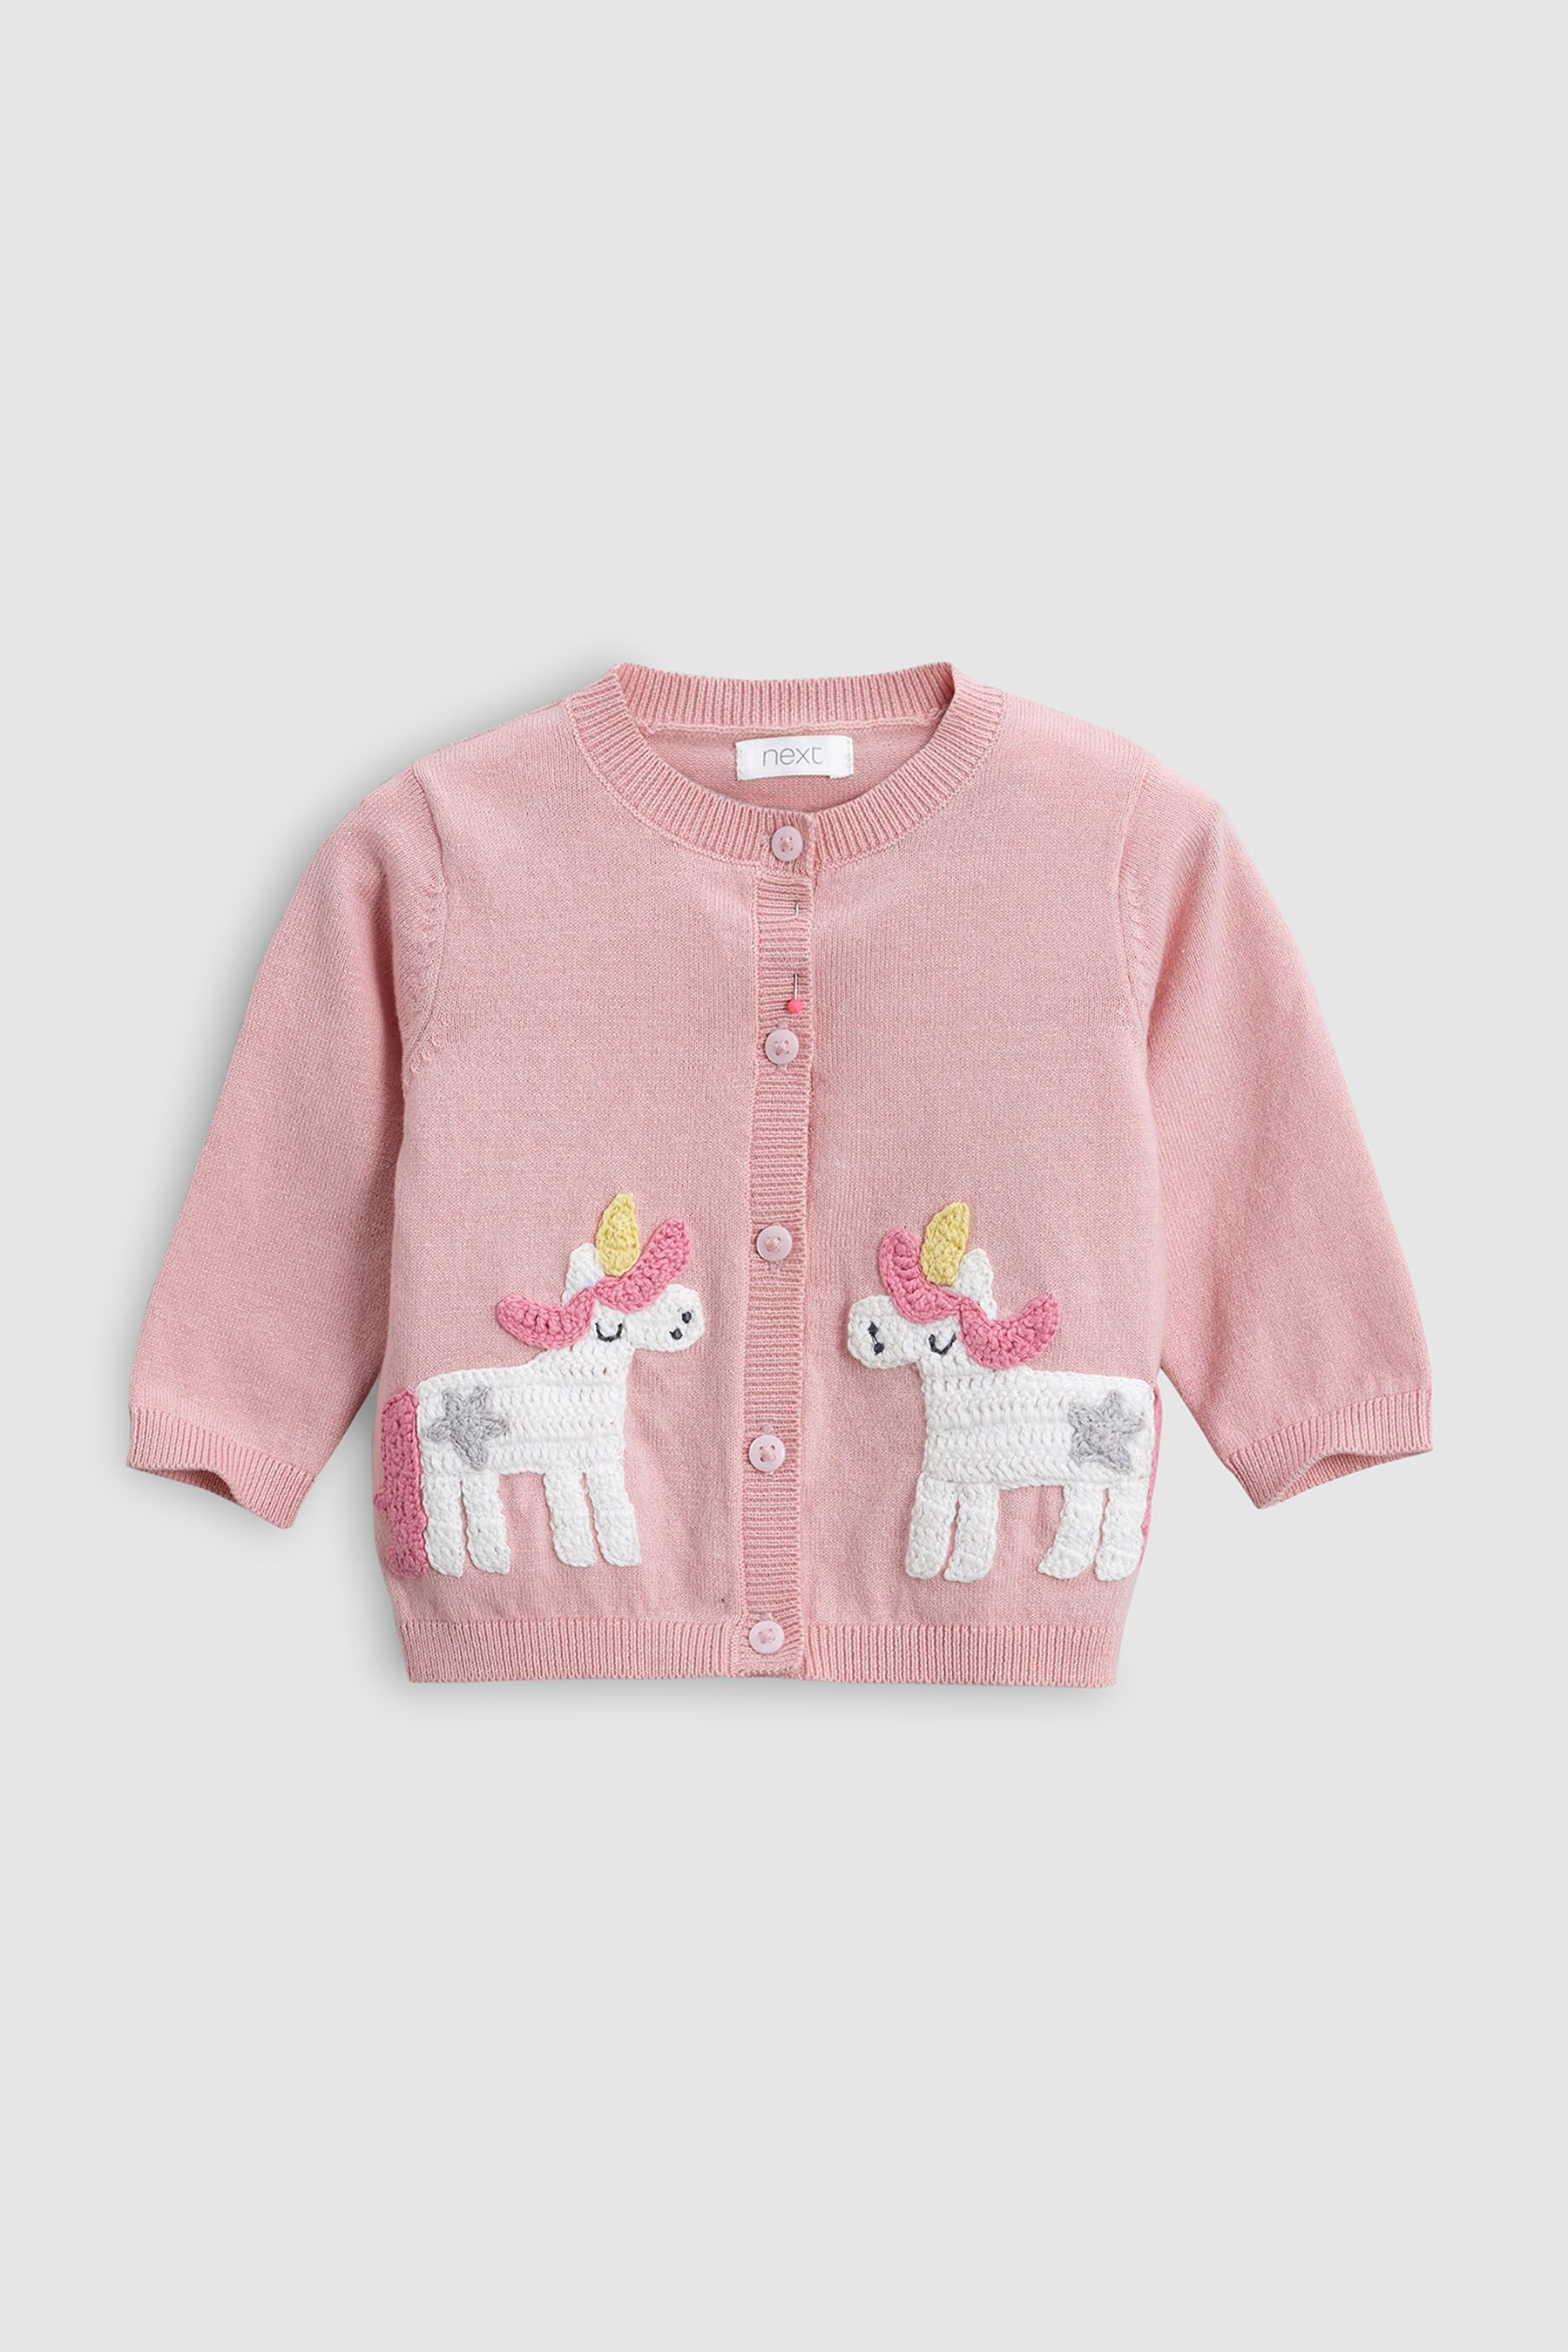 0db5950c93e3 Girls Next Pink Unicorn Cardigan (0mths-2yrs) - Pink